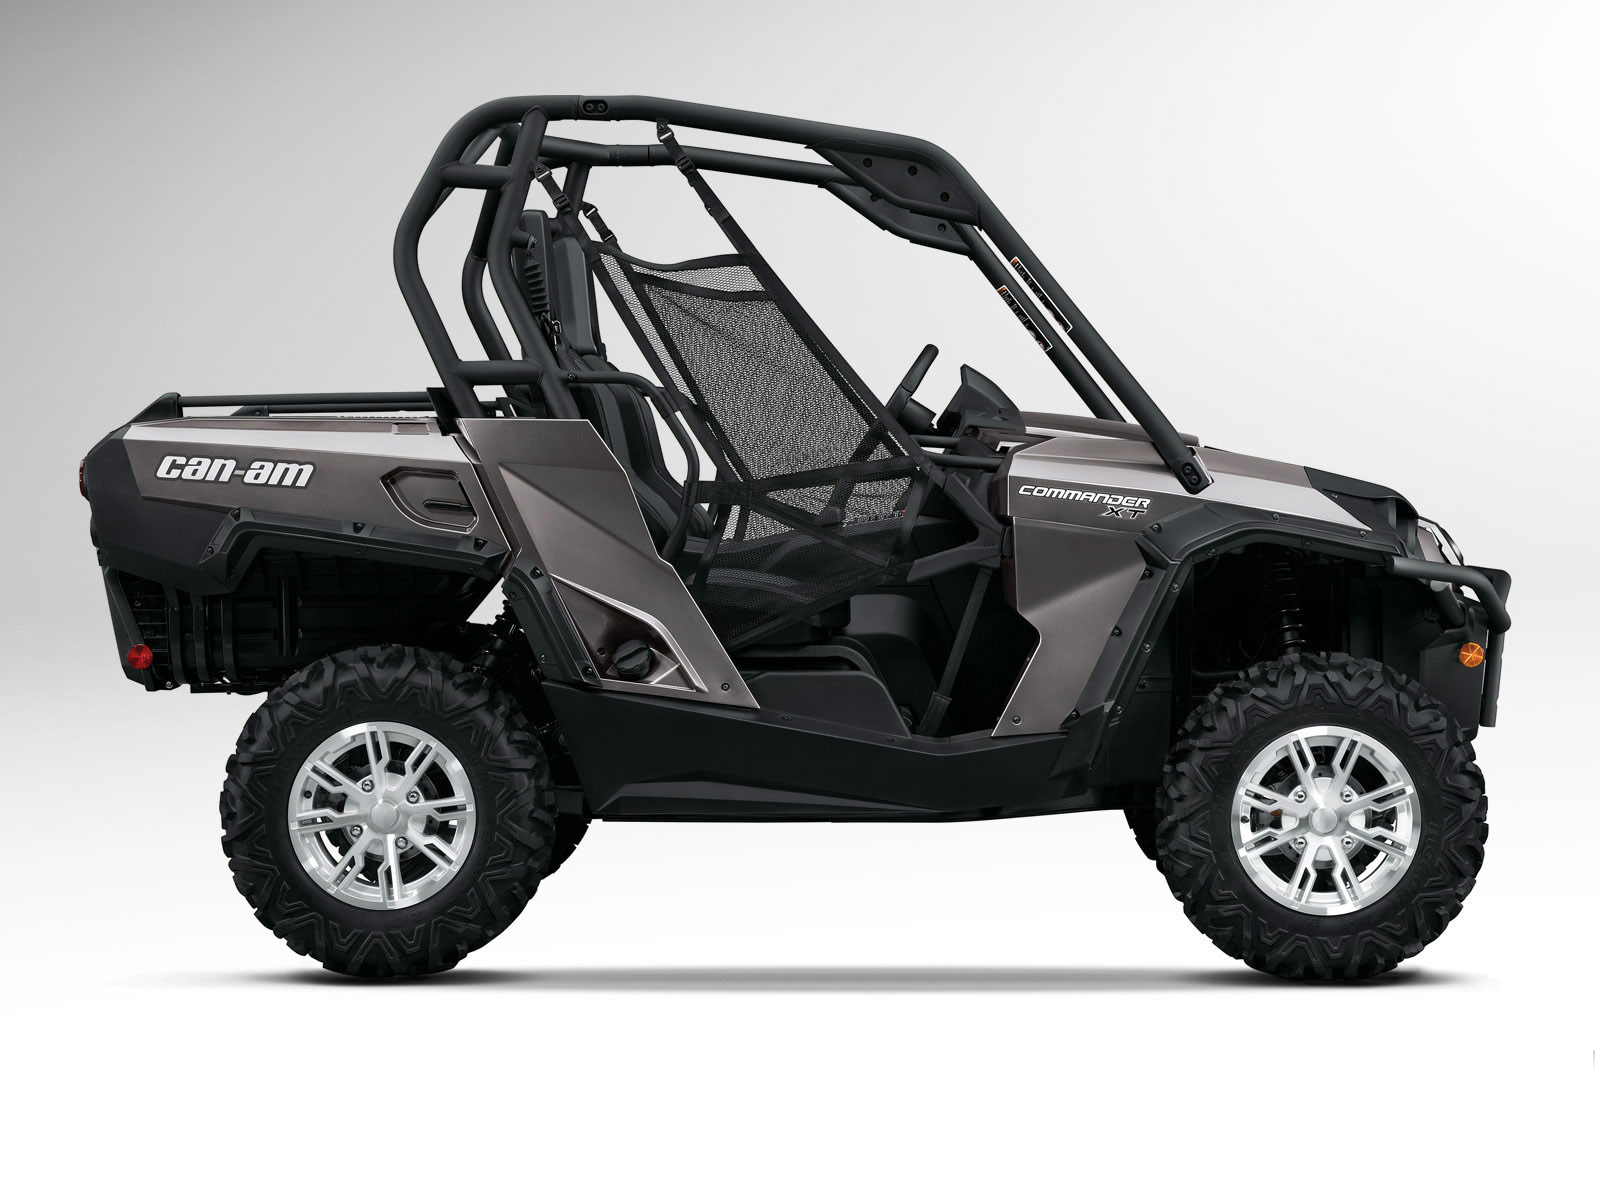 2012 can am commander 1000 xt auto insurance information. Black Bedroom Furniture Sets. Home Design Ideas